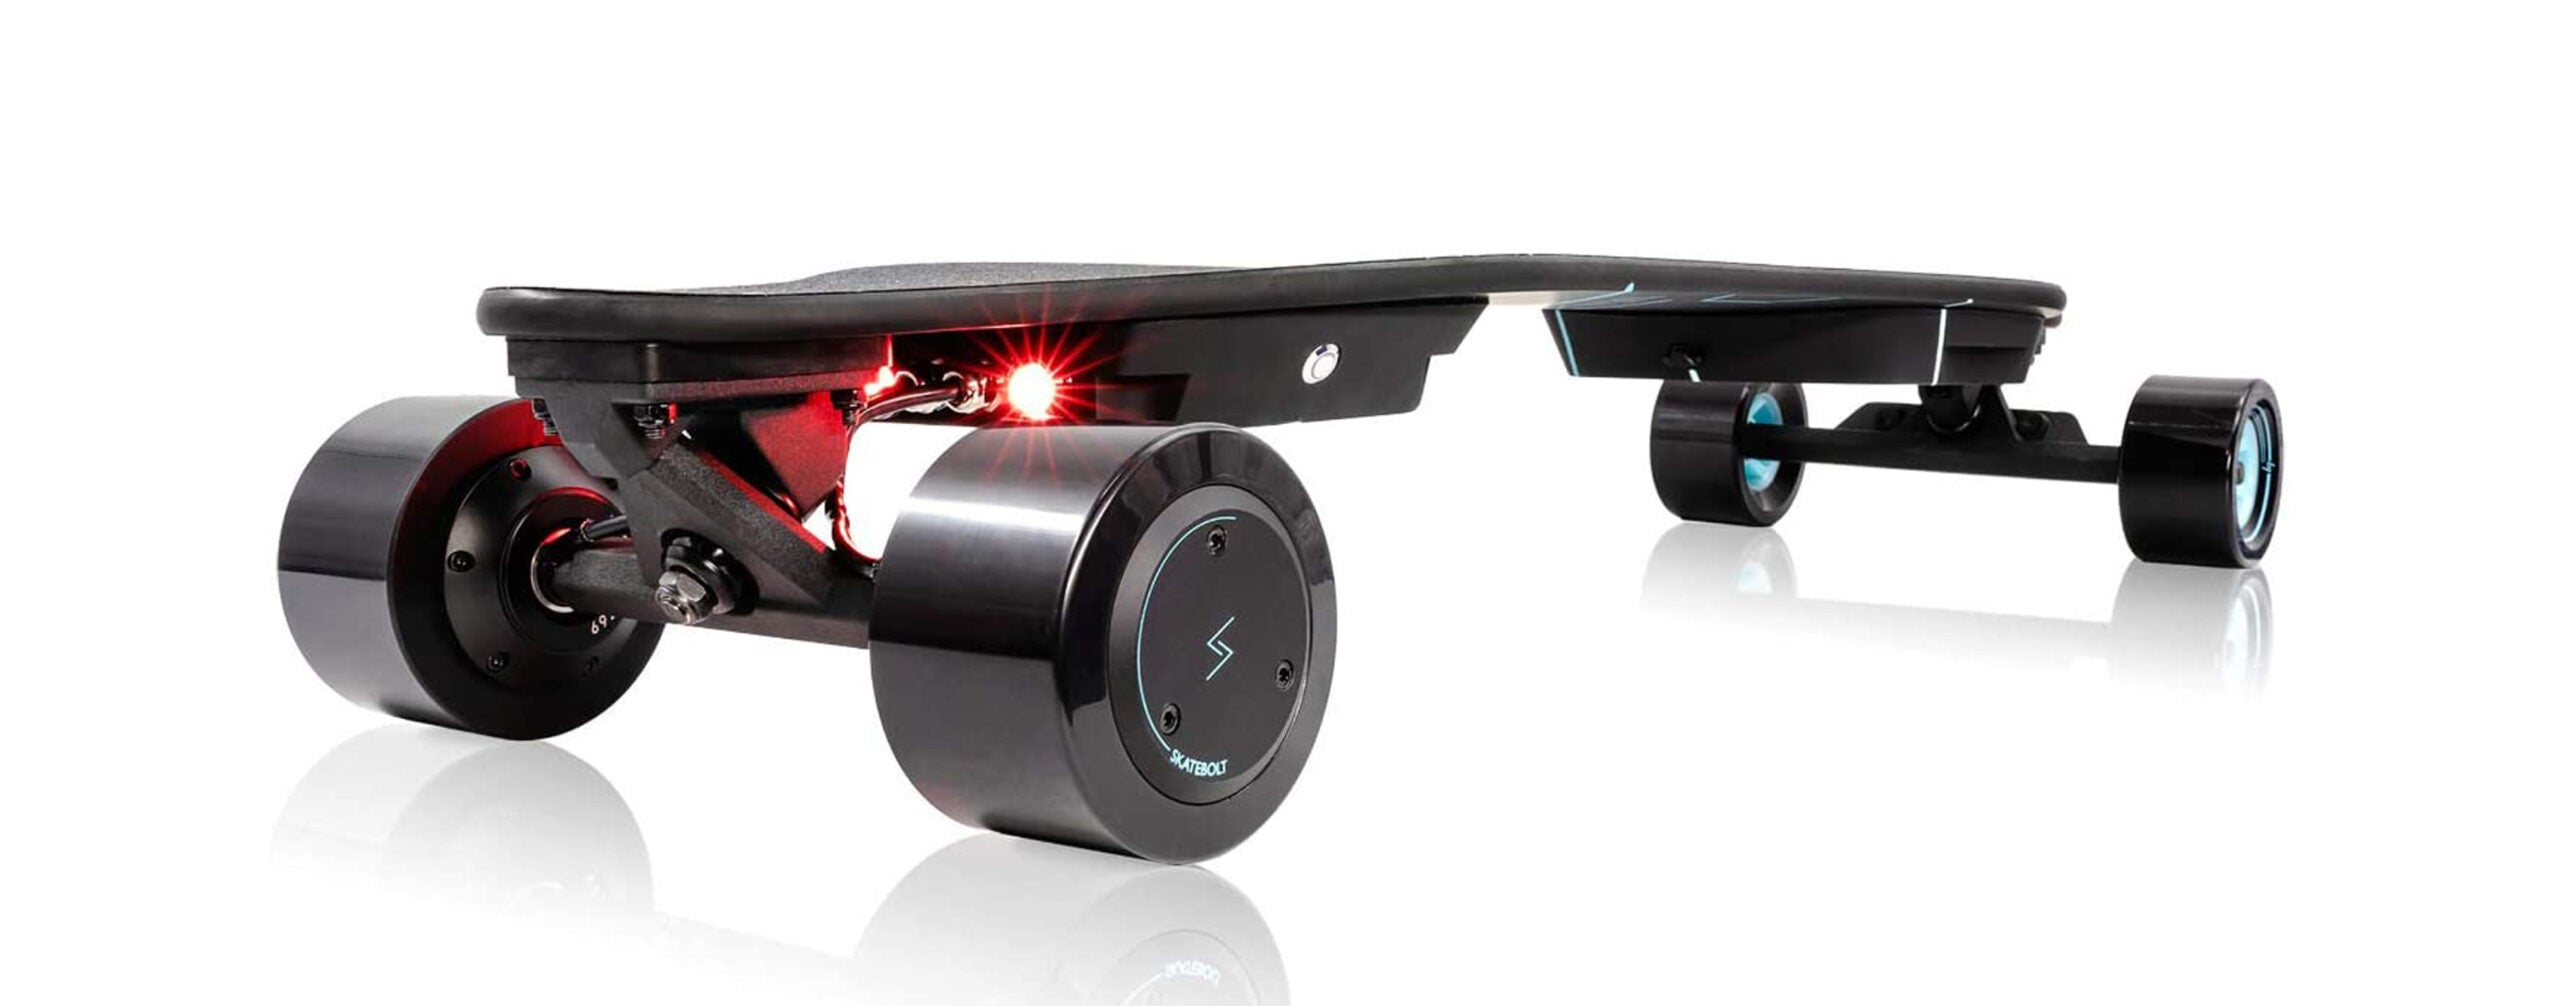 Best Off Road Electric Skateboards (Review) in 2021